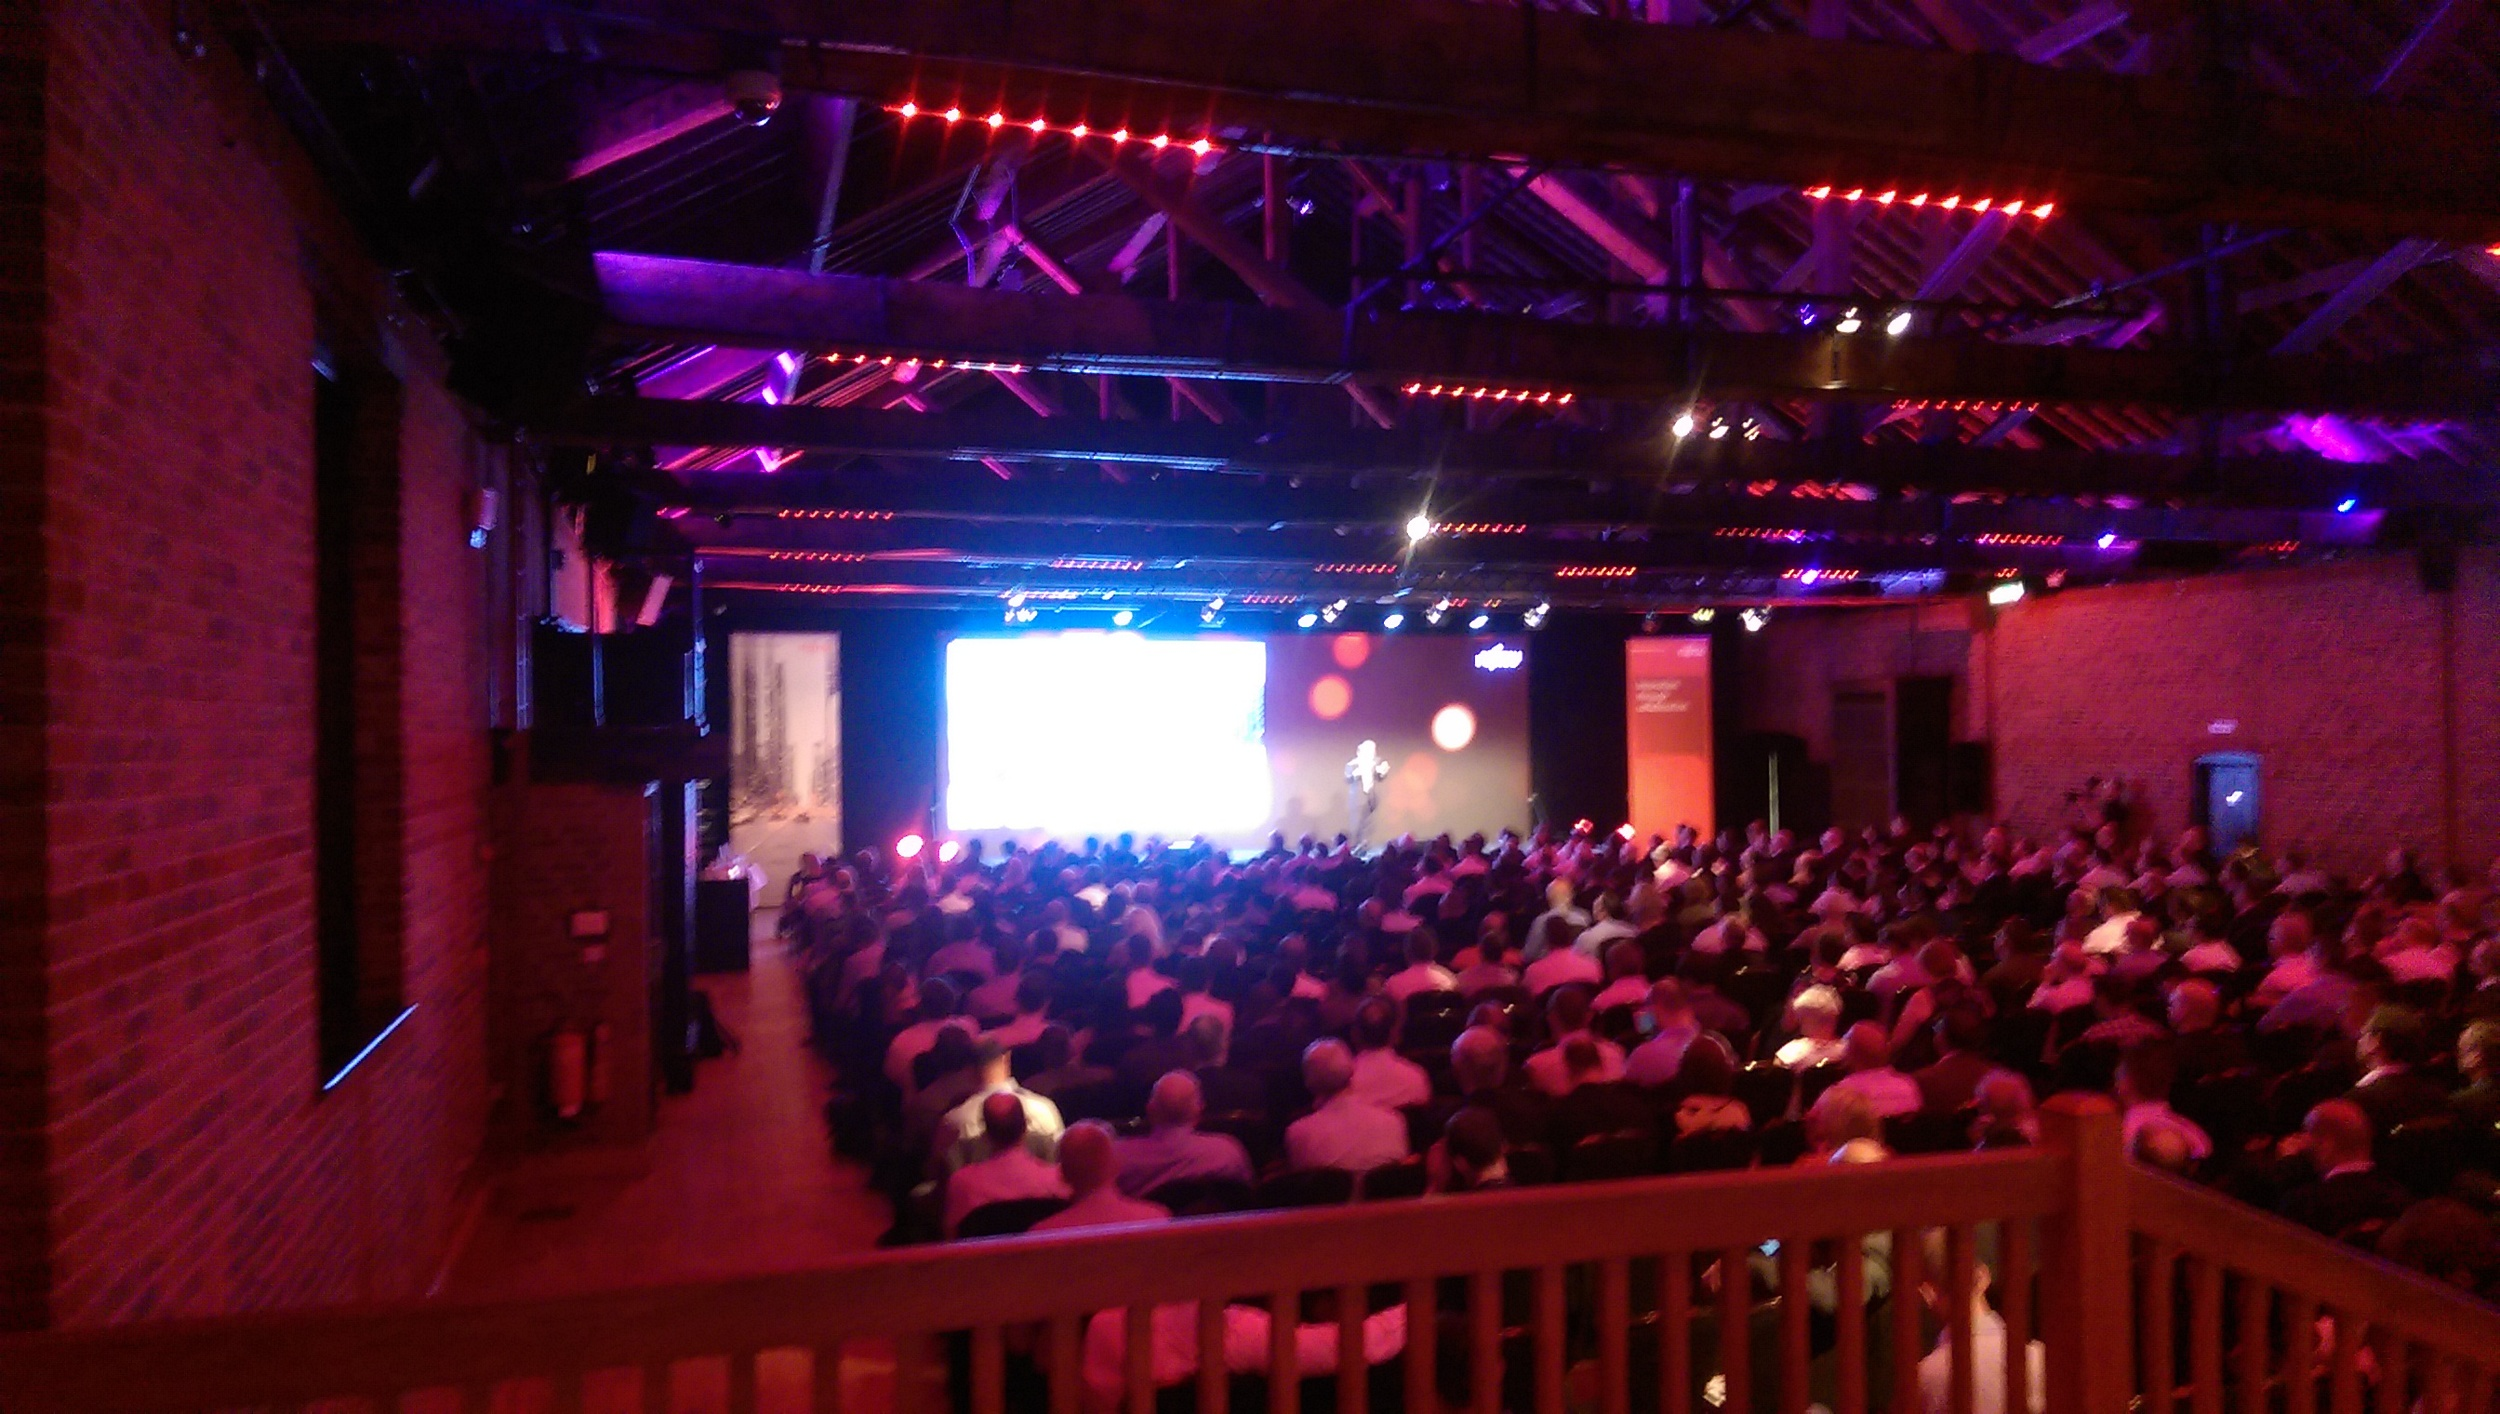 The keynote address from Fujitsu's Dr Joseph Reger was standing room only.